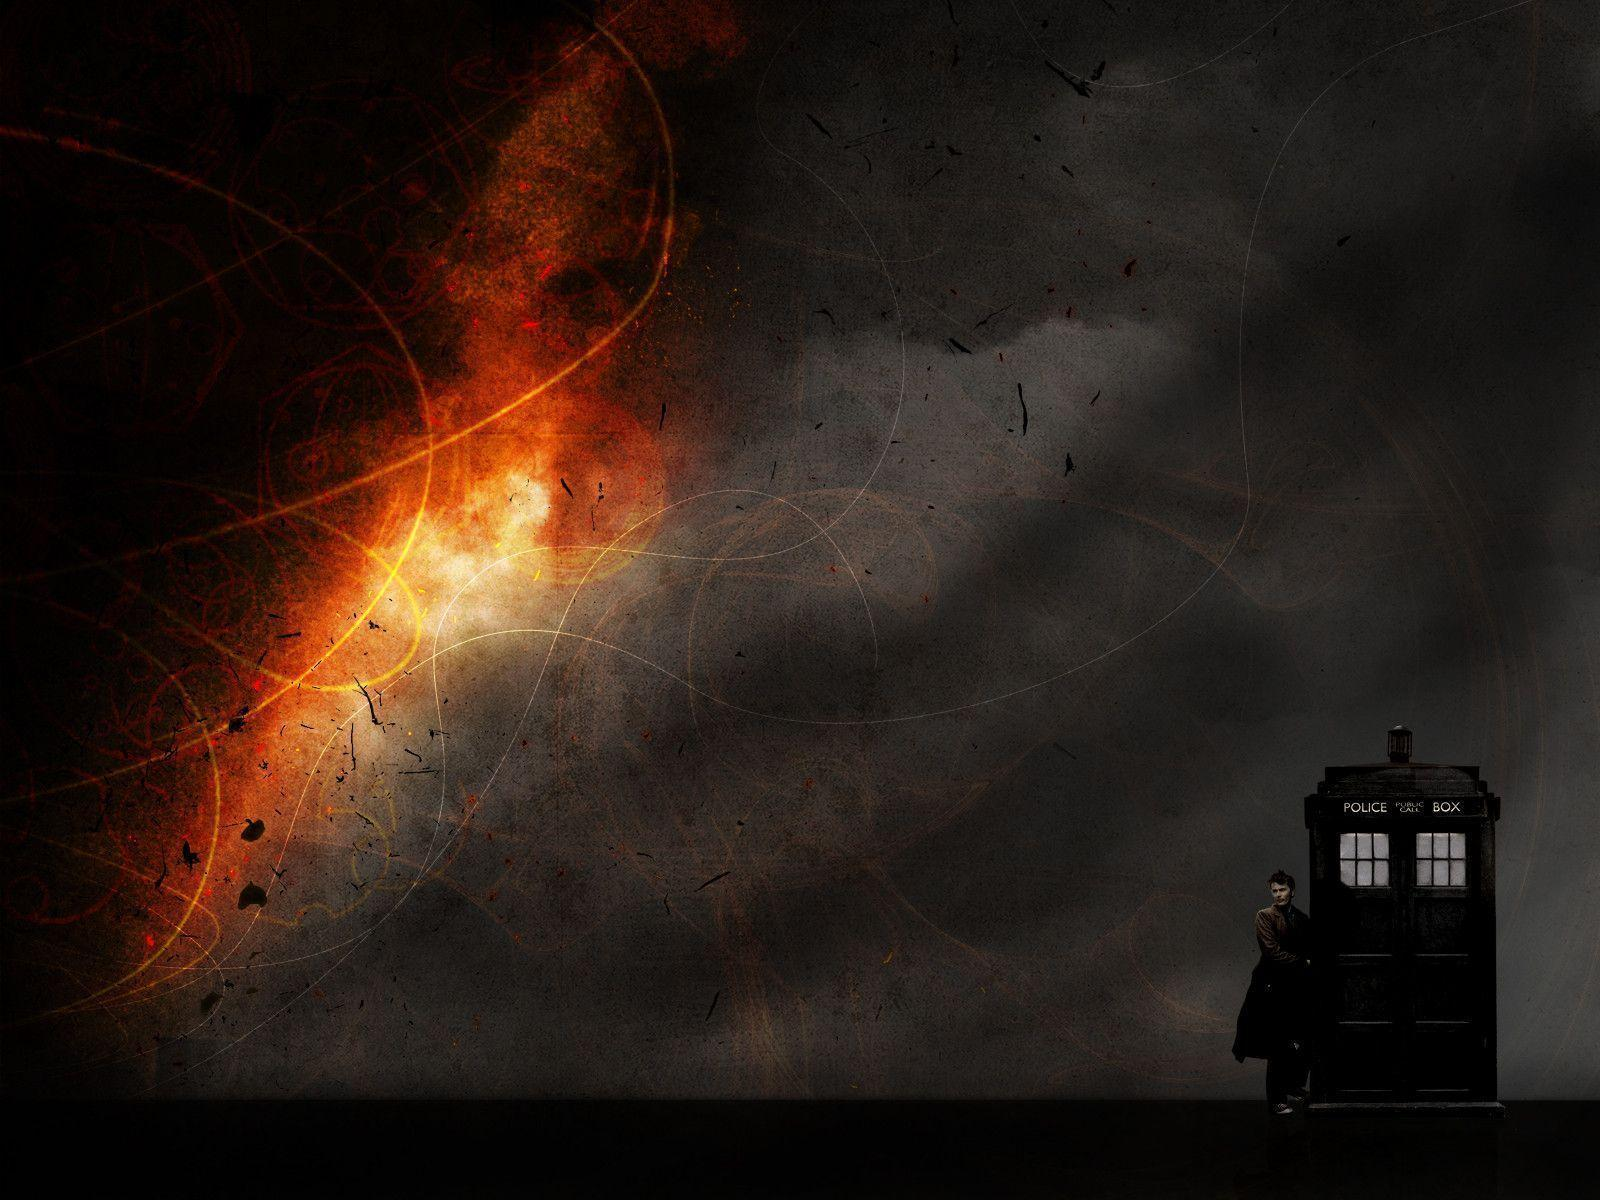 Doctor Who Wallpaper.jpg